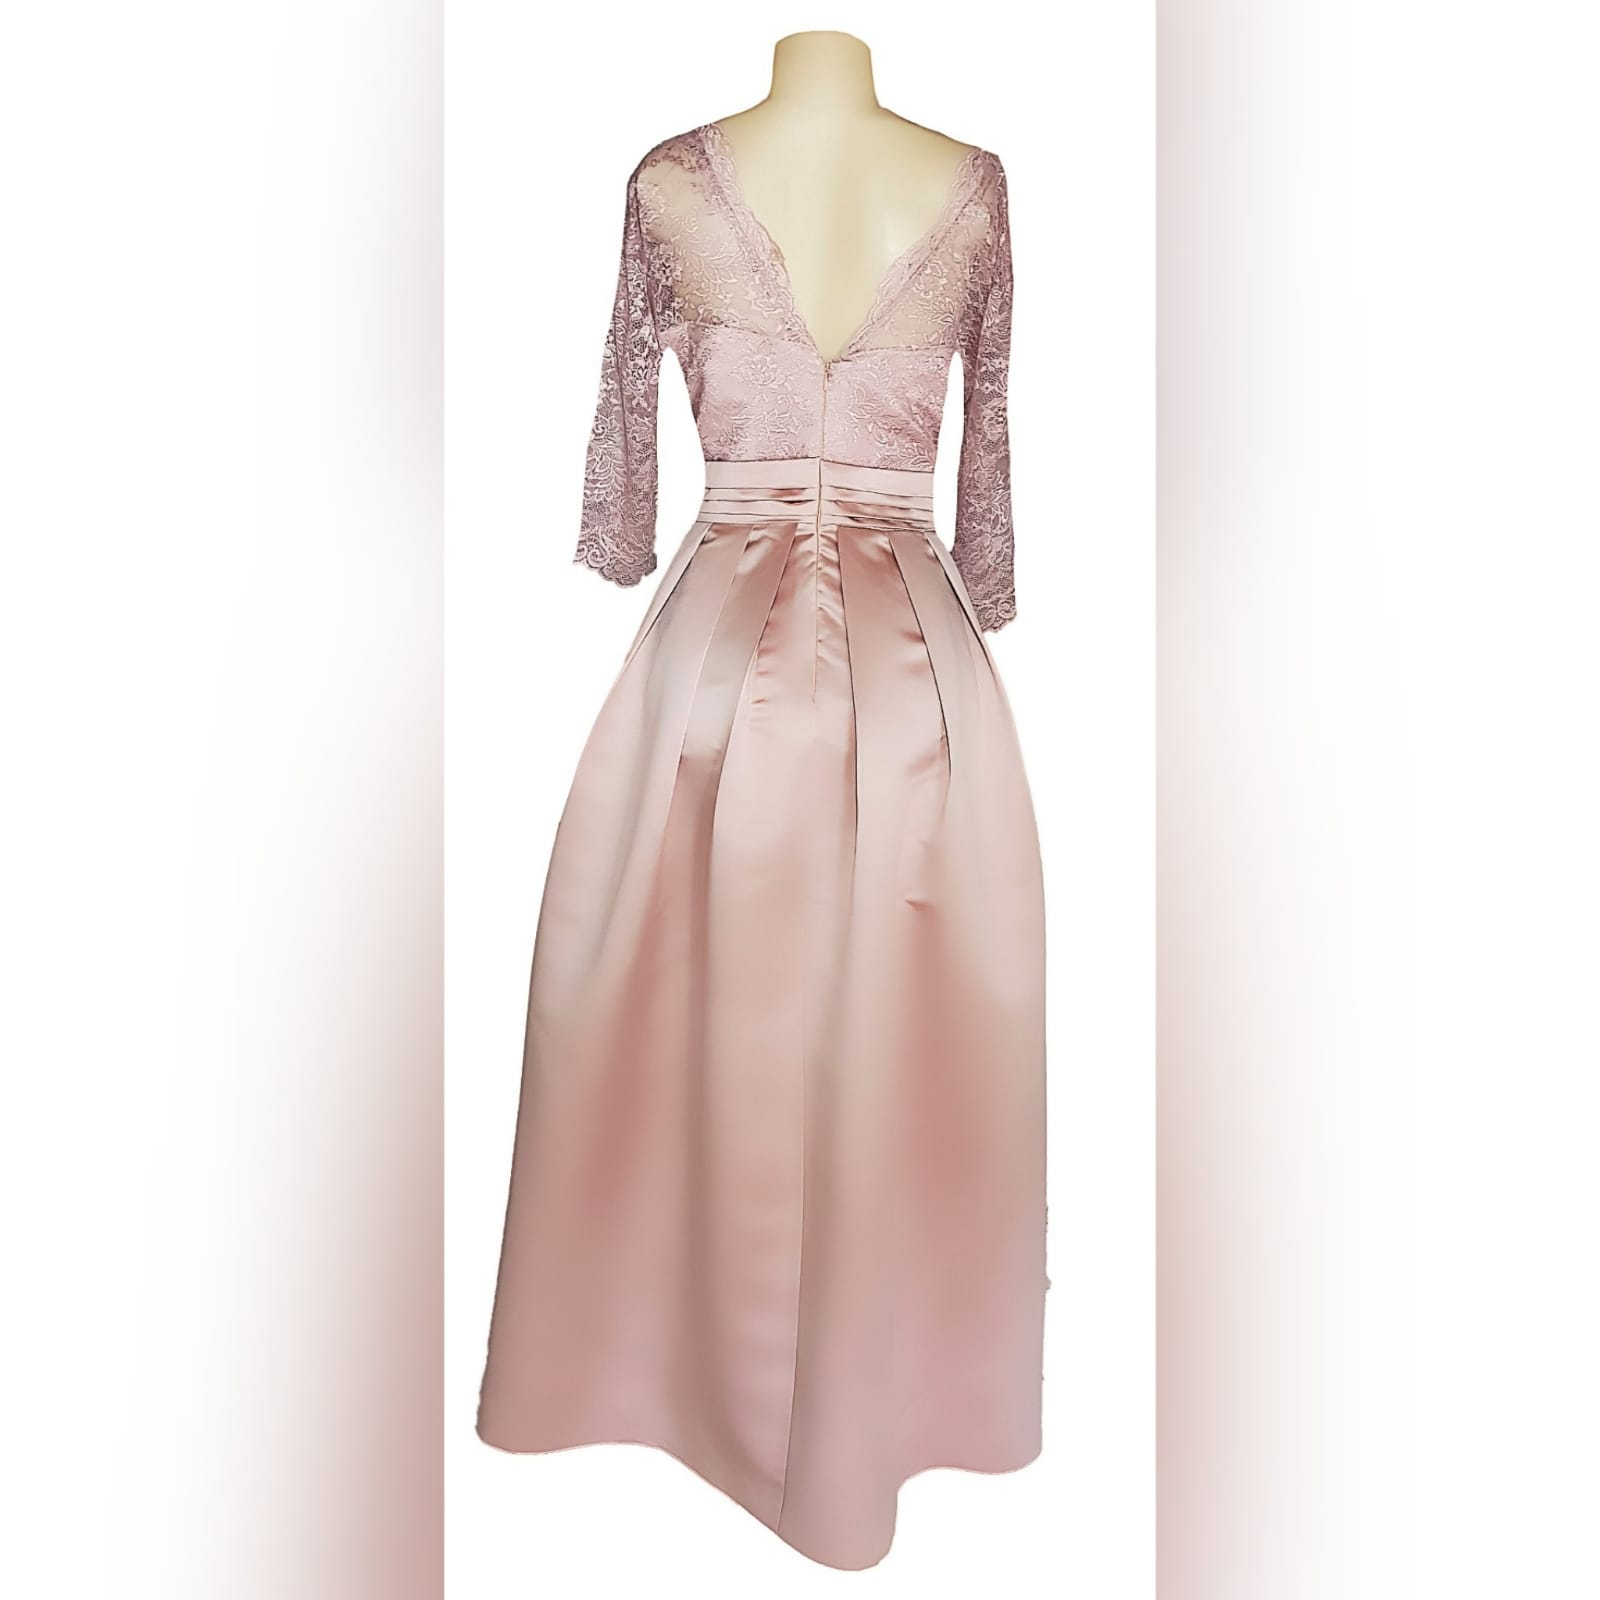 Formal evening dress in dusty pink 5 this dress was created for a wedding ceremony. A formal evening dress in dusty pink. With a lace bodice and 3/4 lace sleeves. With a v neckline. Bottom in a satin, pleated, with a pleated belt and pockets.